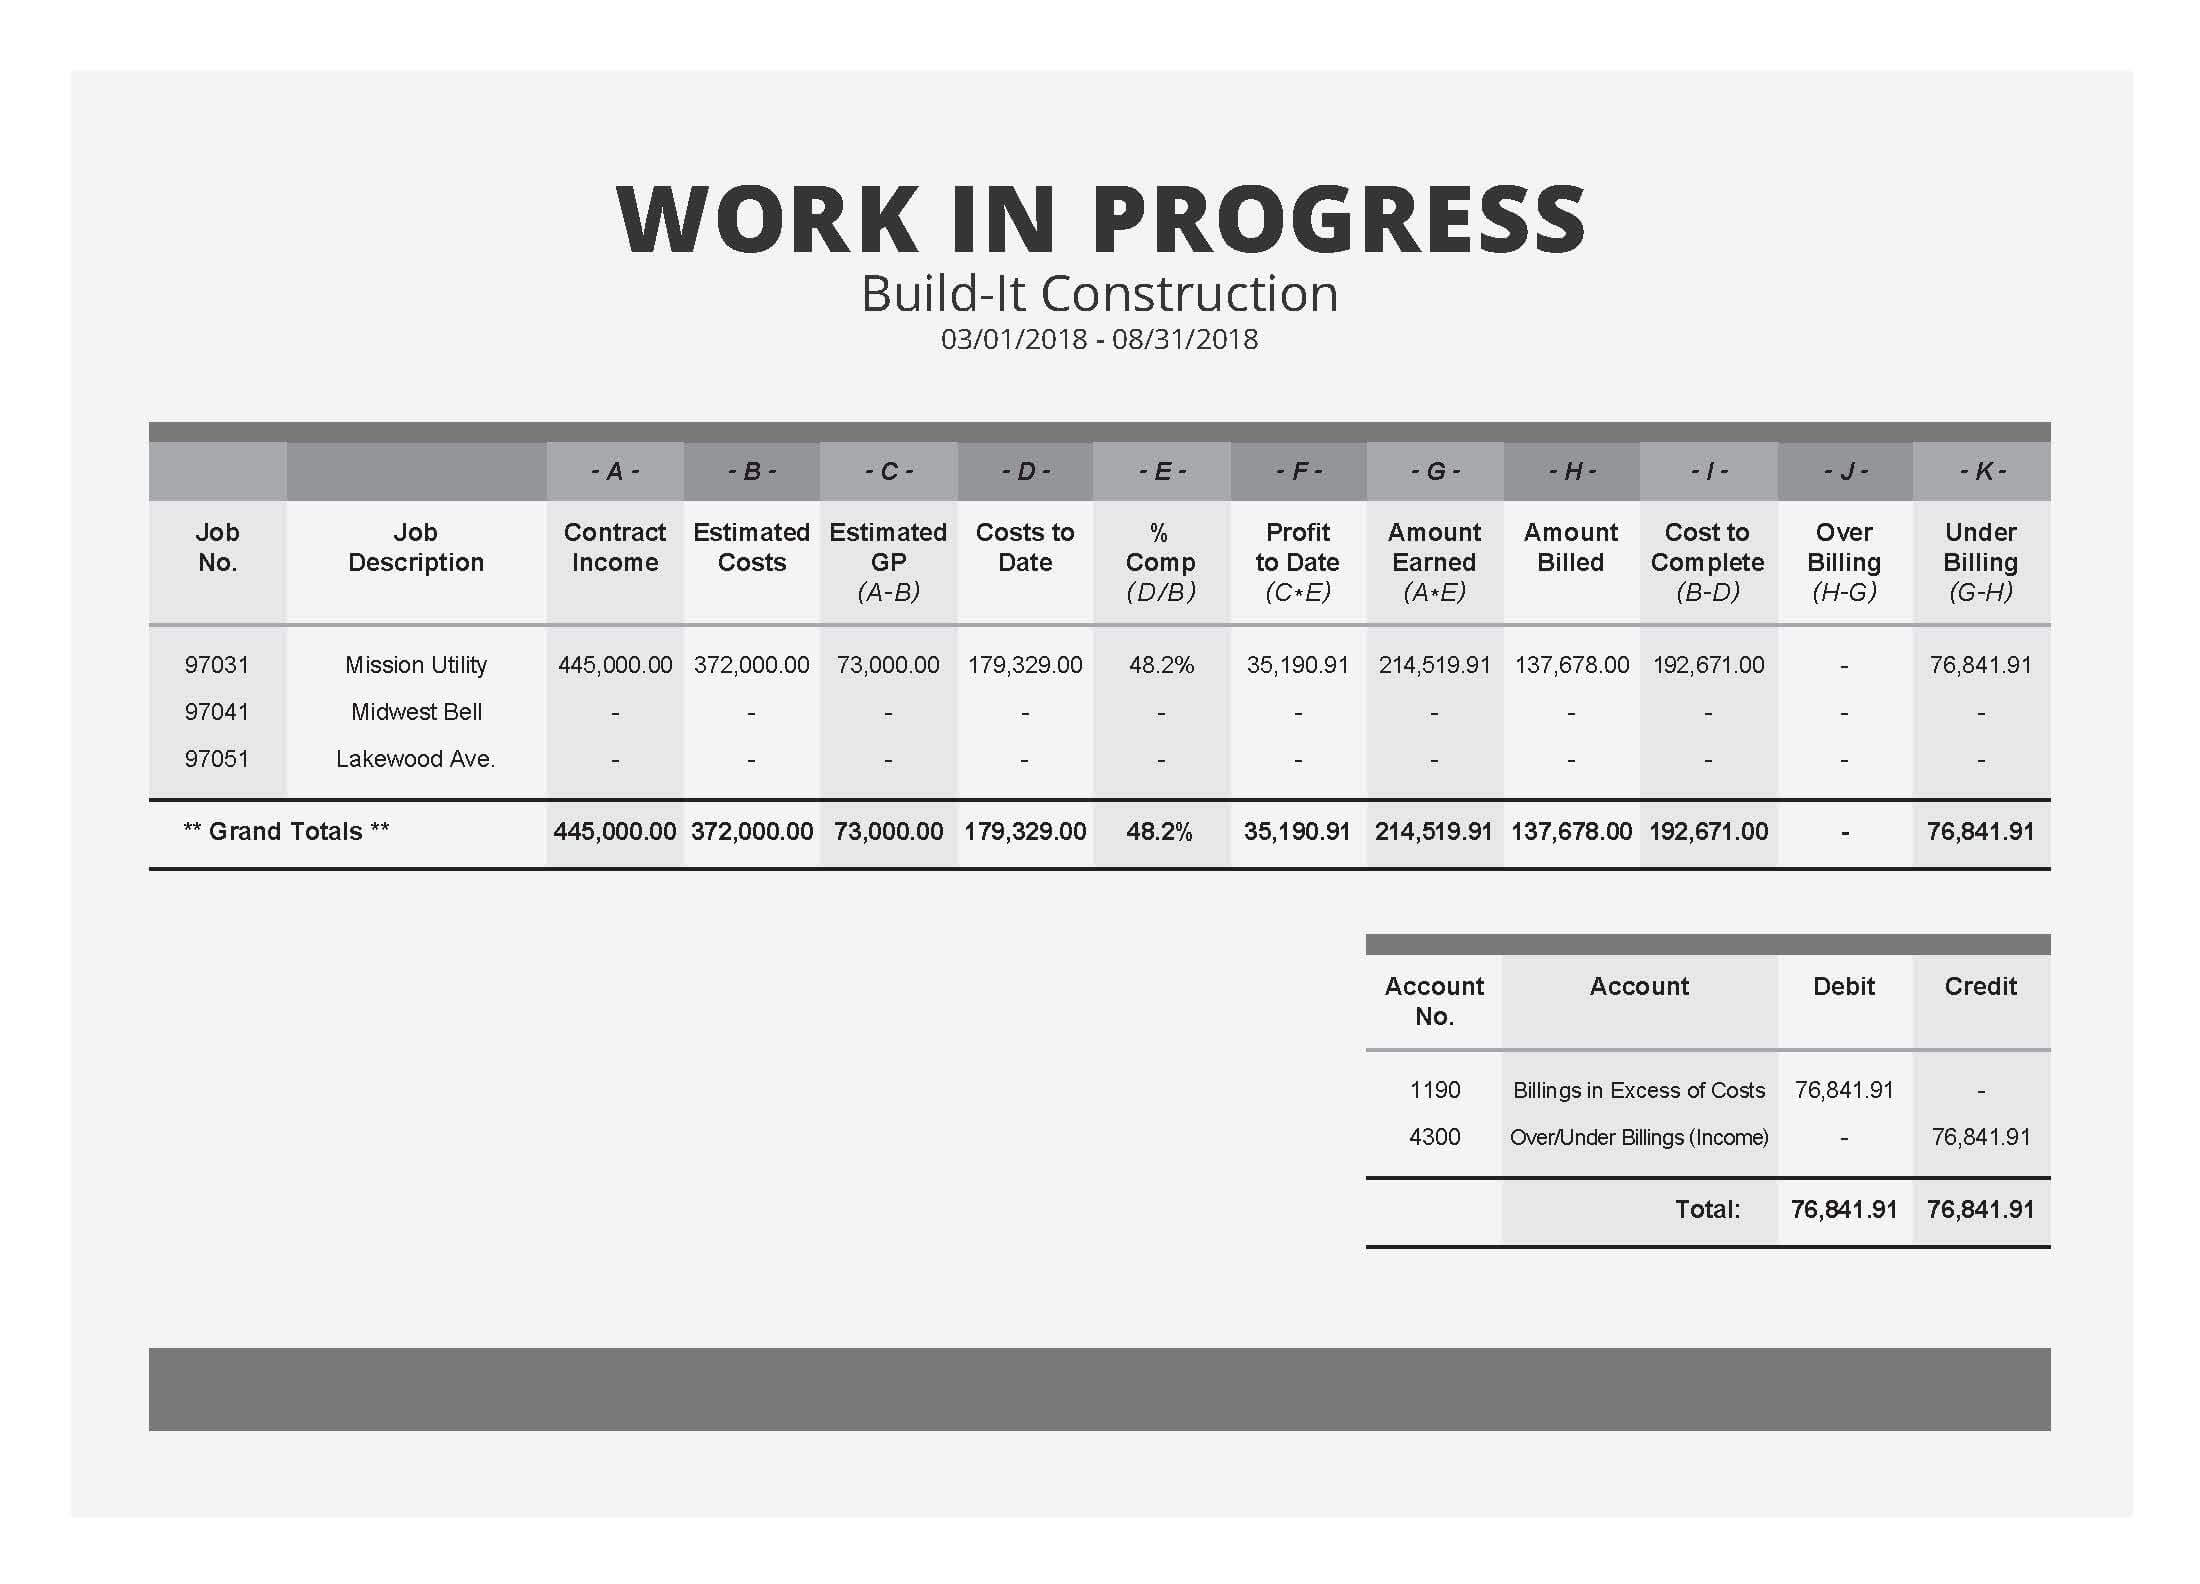 The Field Guide To Construction Wip Reports [Sample Wip Report] Regarding Construction Cost Report Template